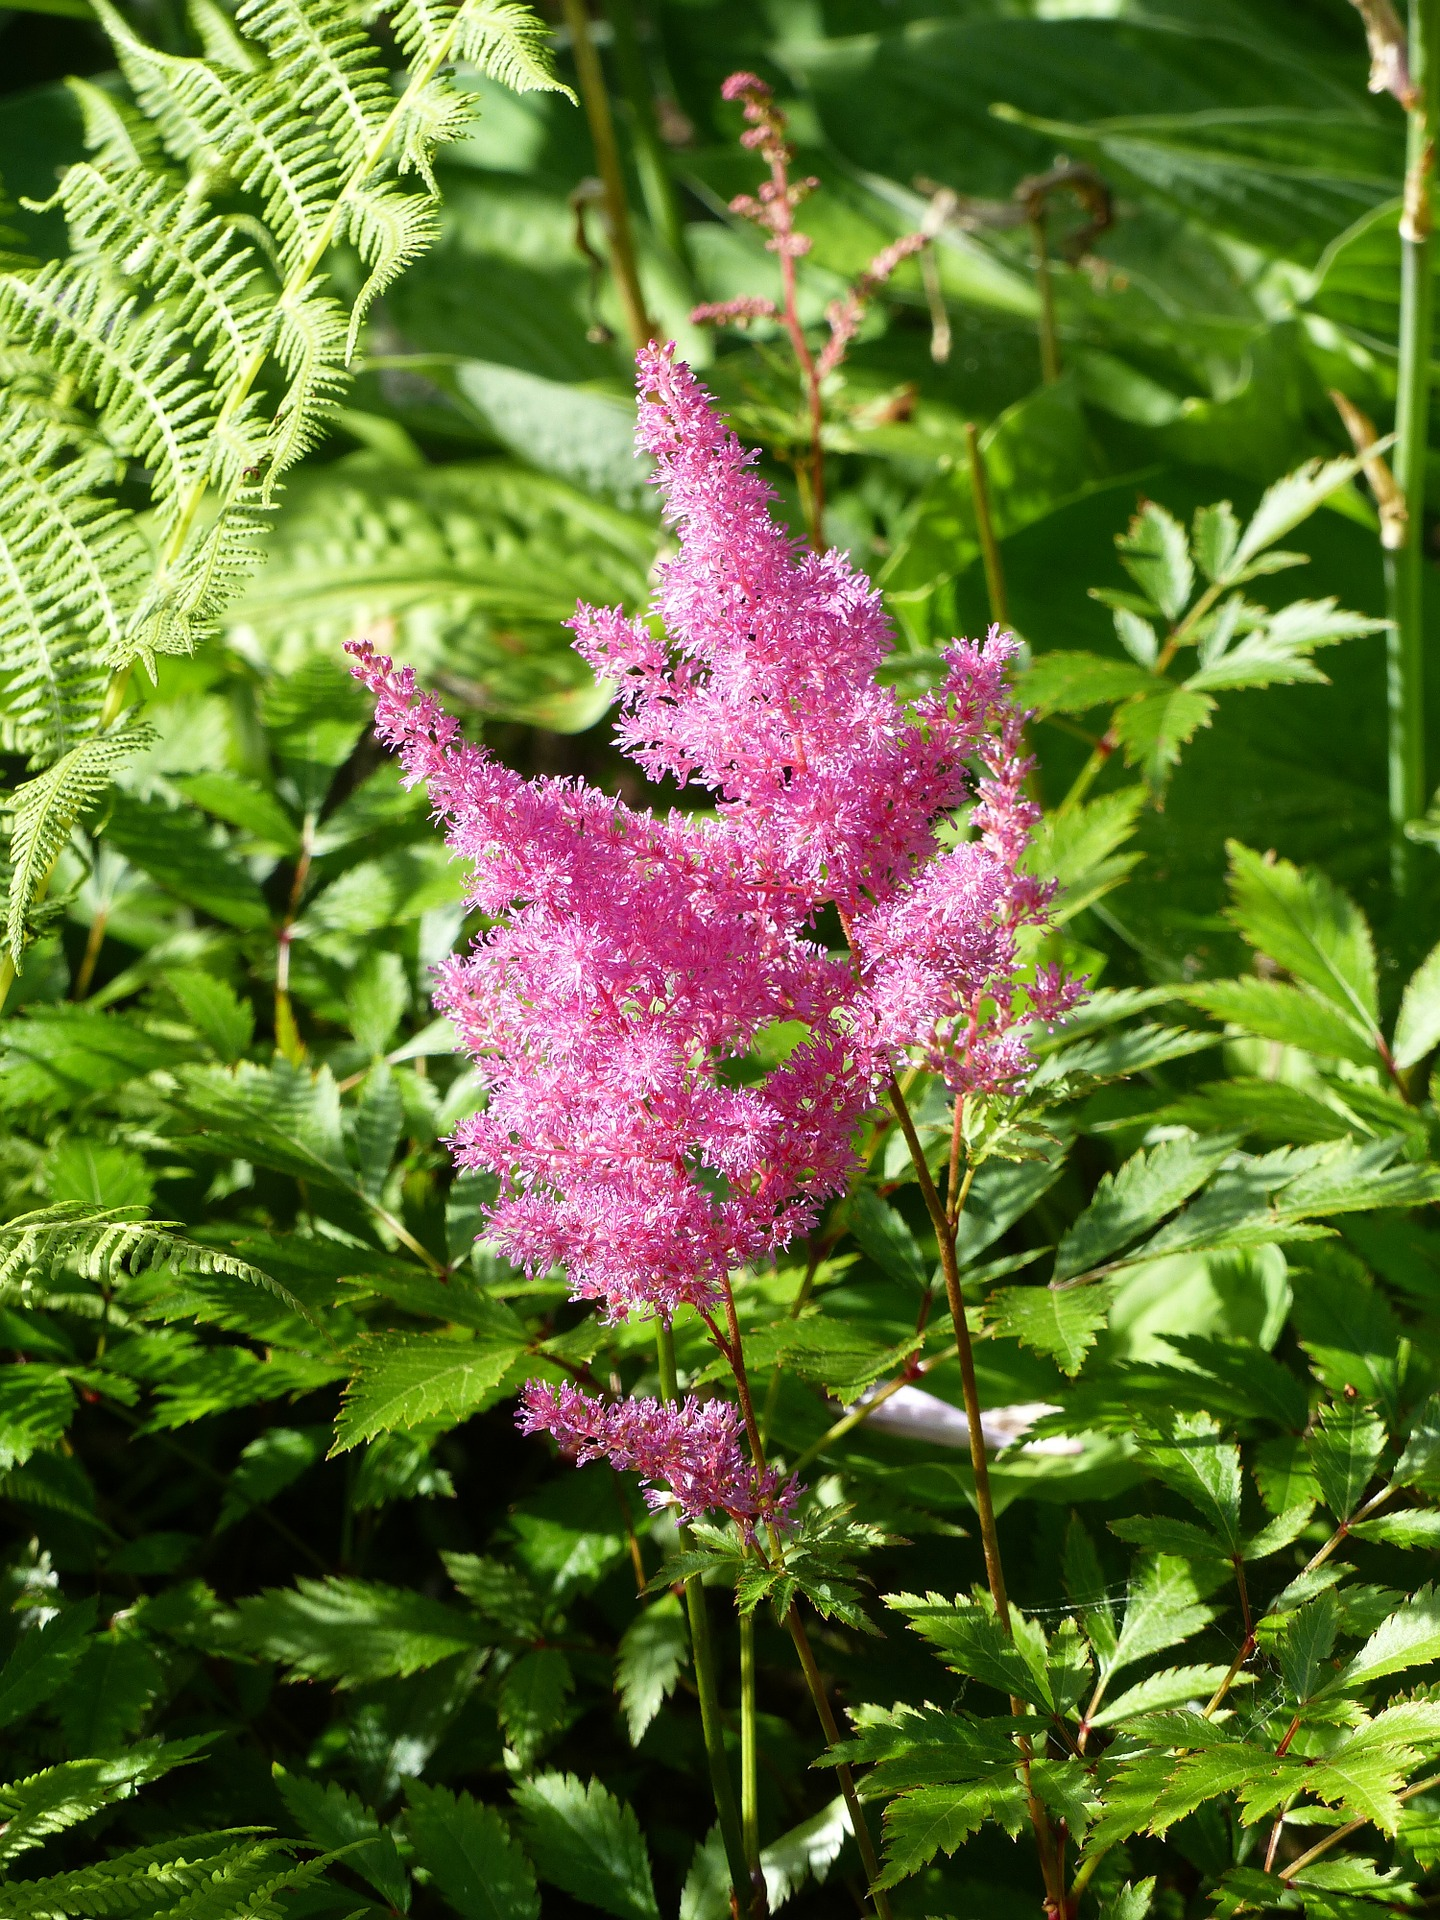 Astilbe How To Plant Grow And Care For Astilbe Flowers The Old